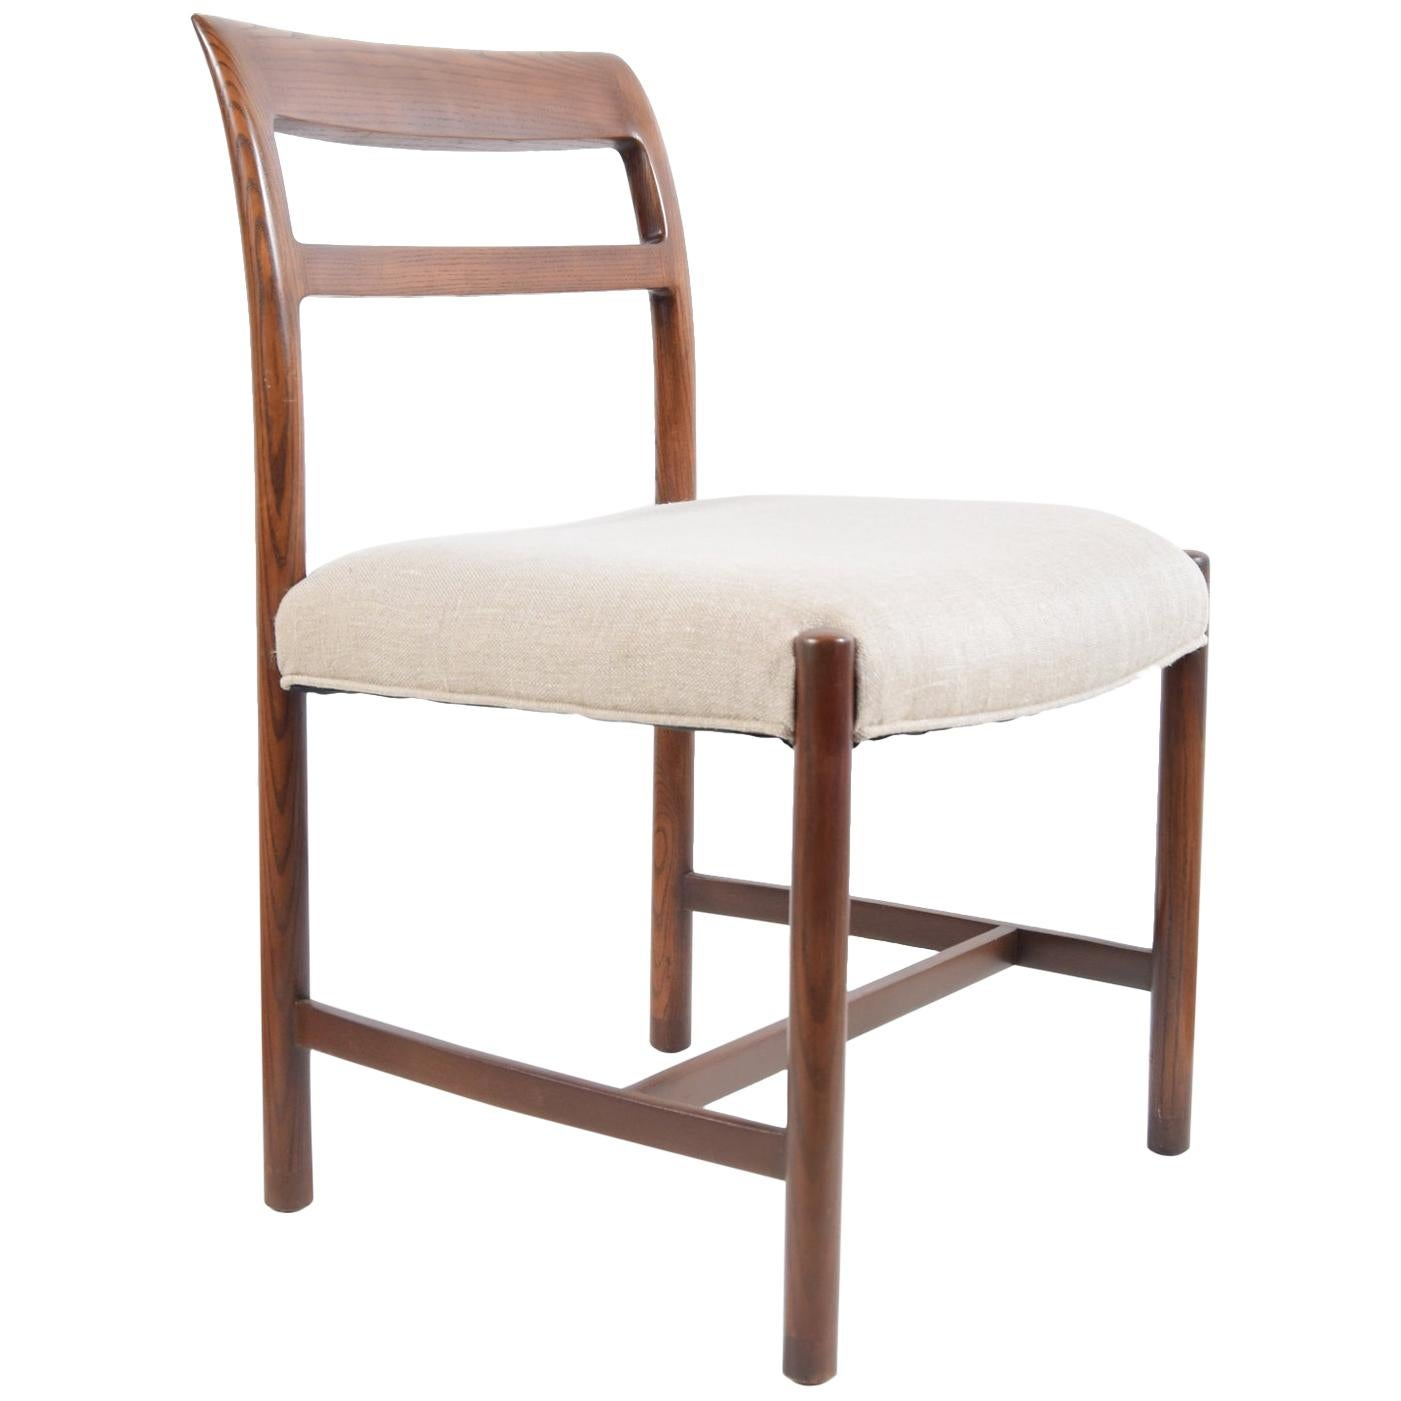 Wide Side Chair by Roger Sprunger